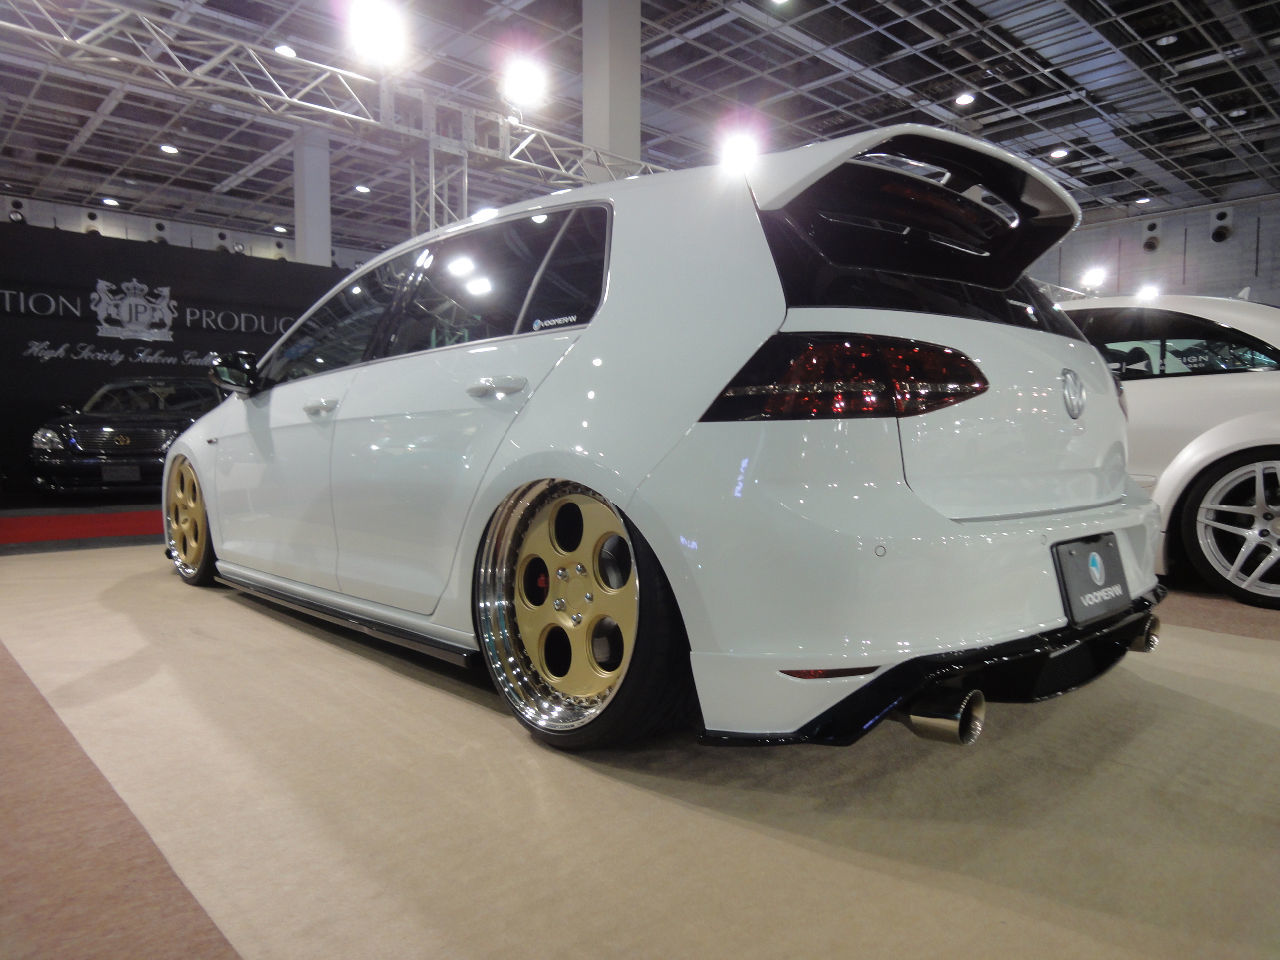 VW Golf 7 mbDESIGN RV1.3 forged 8.5x20 + 9.5x20